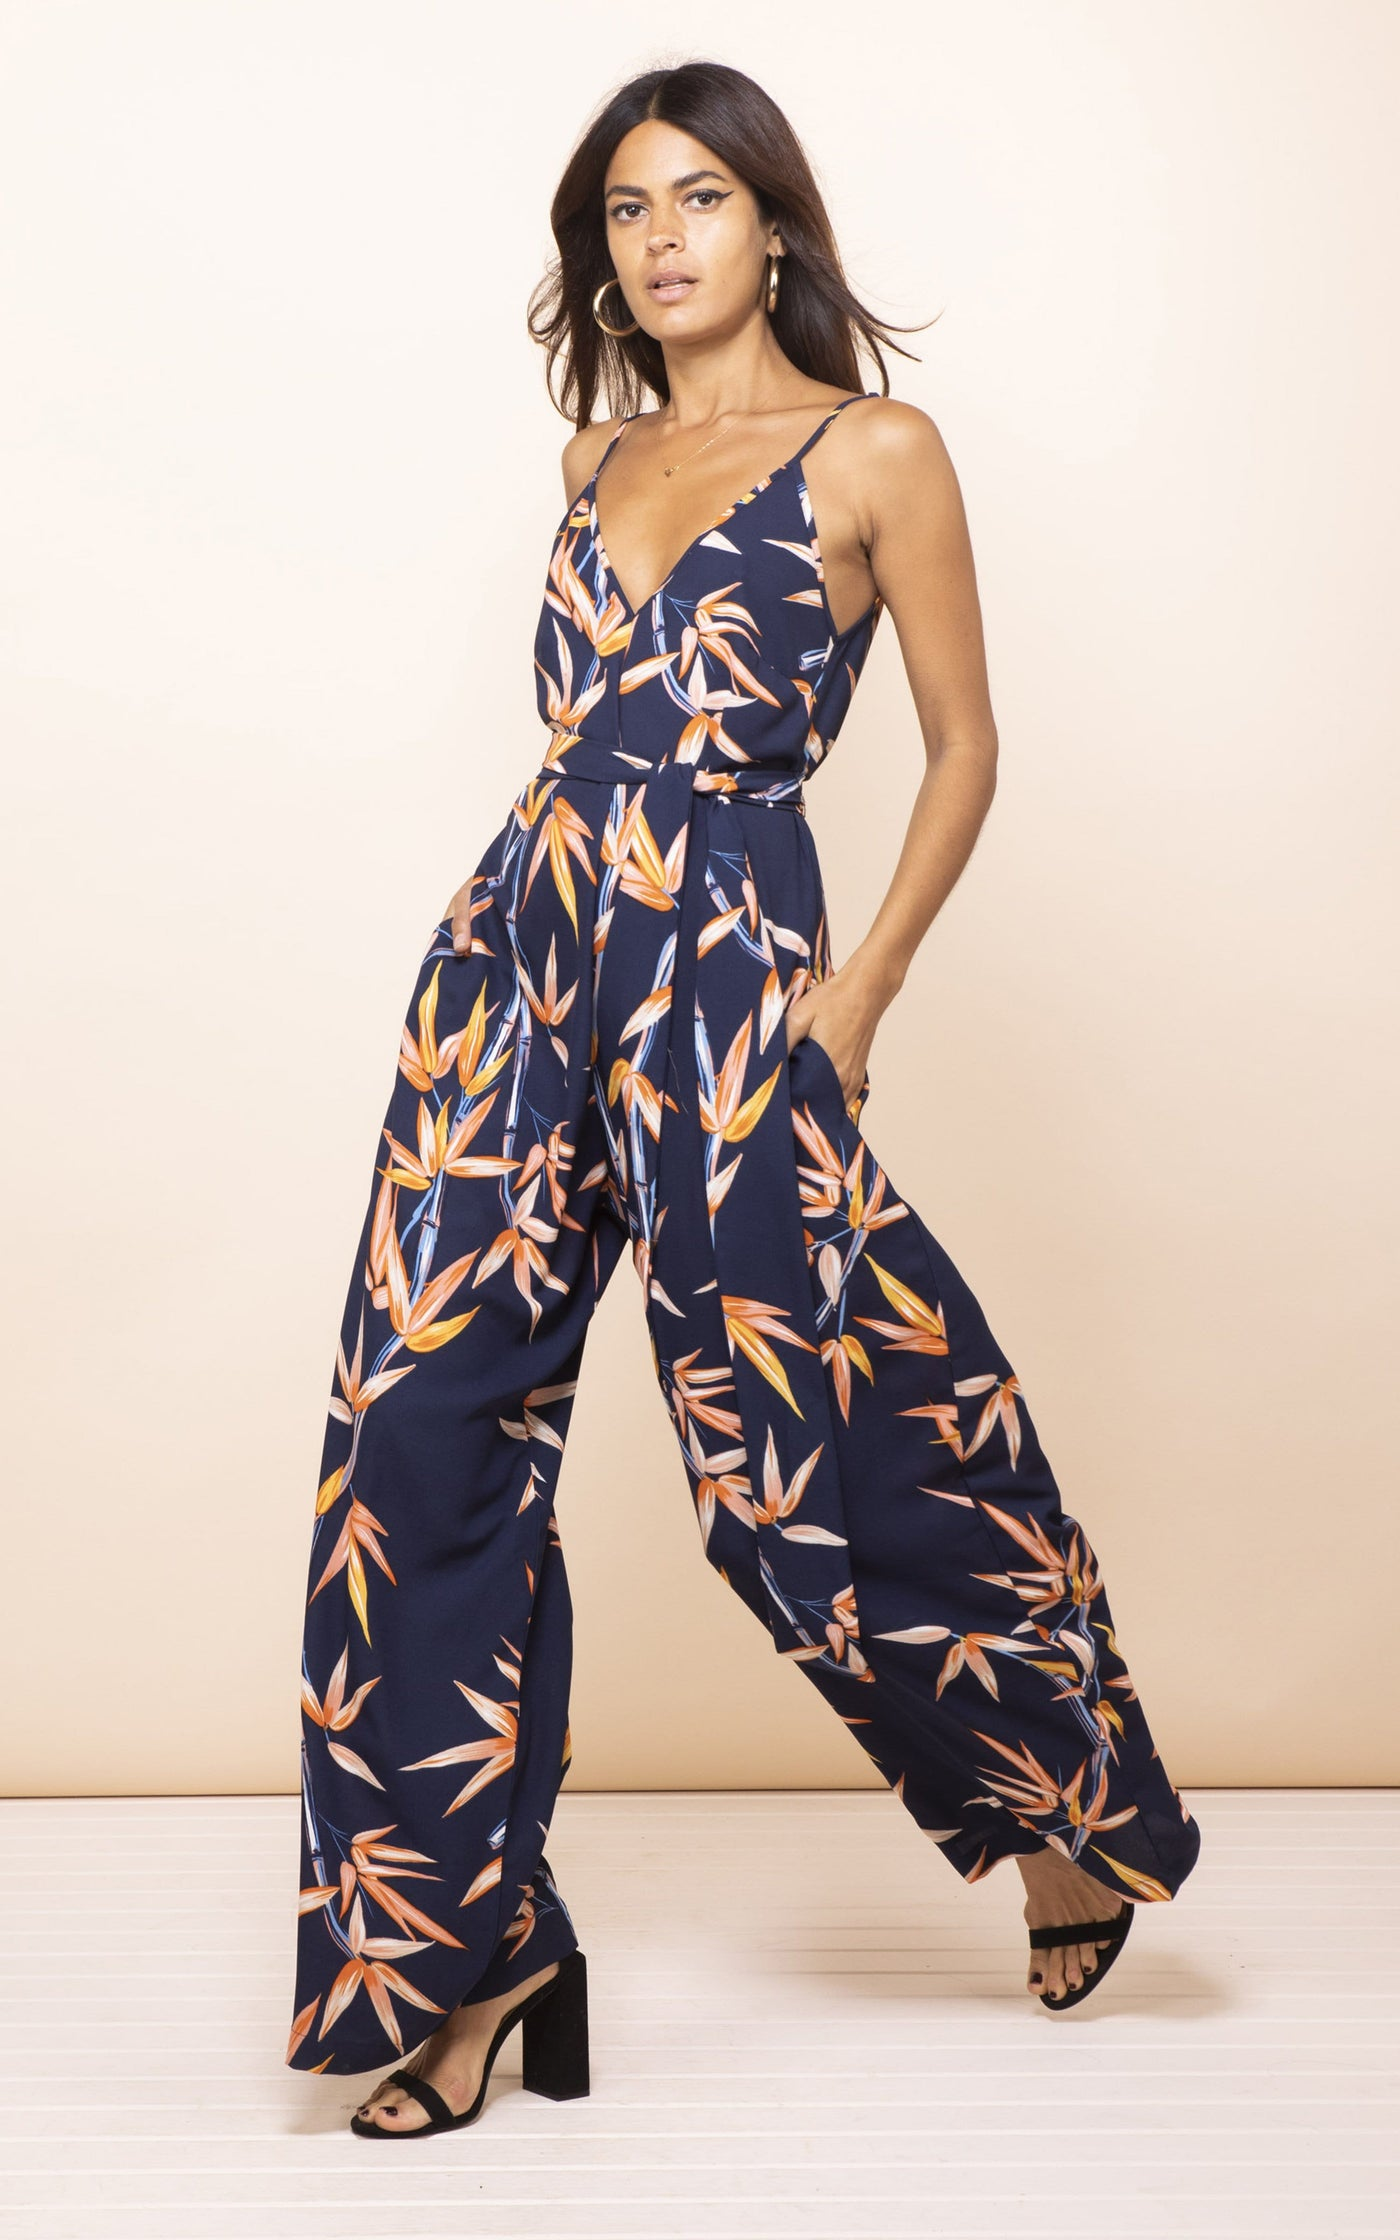 Dancing Leopard model walks to side with hand in pockets wearing Gabriella Jumpsuit in bamboo print